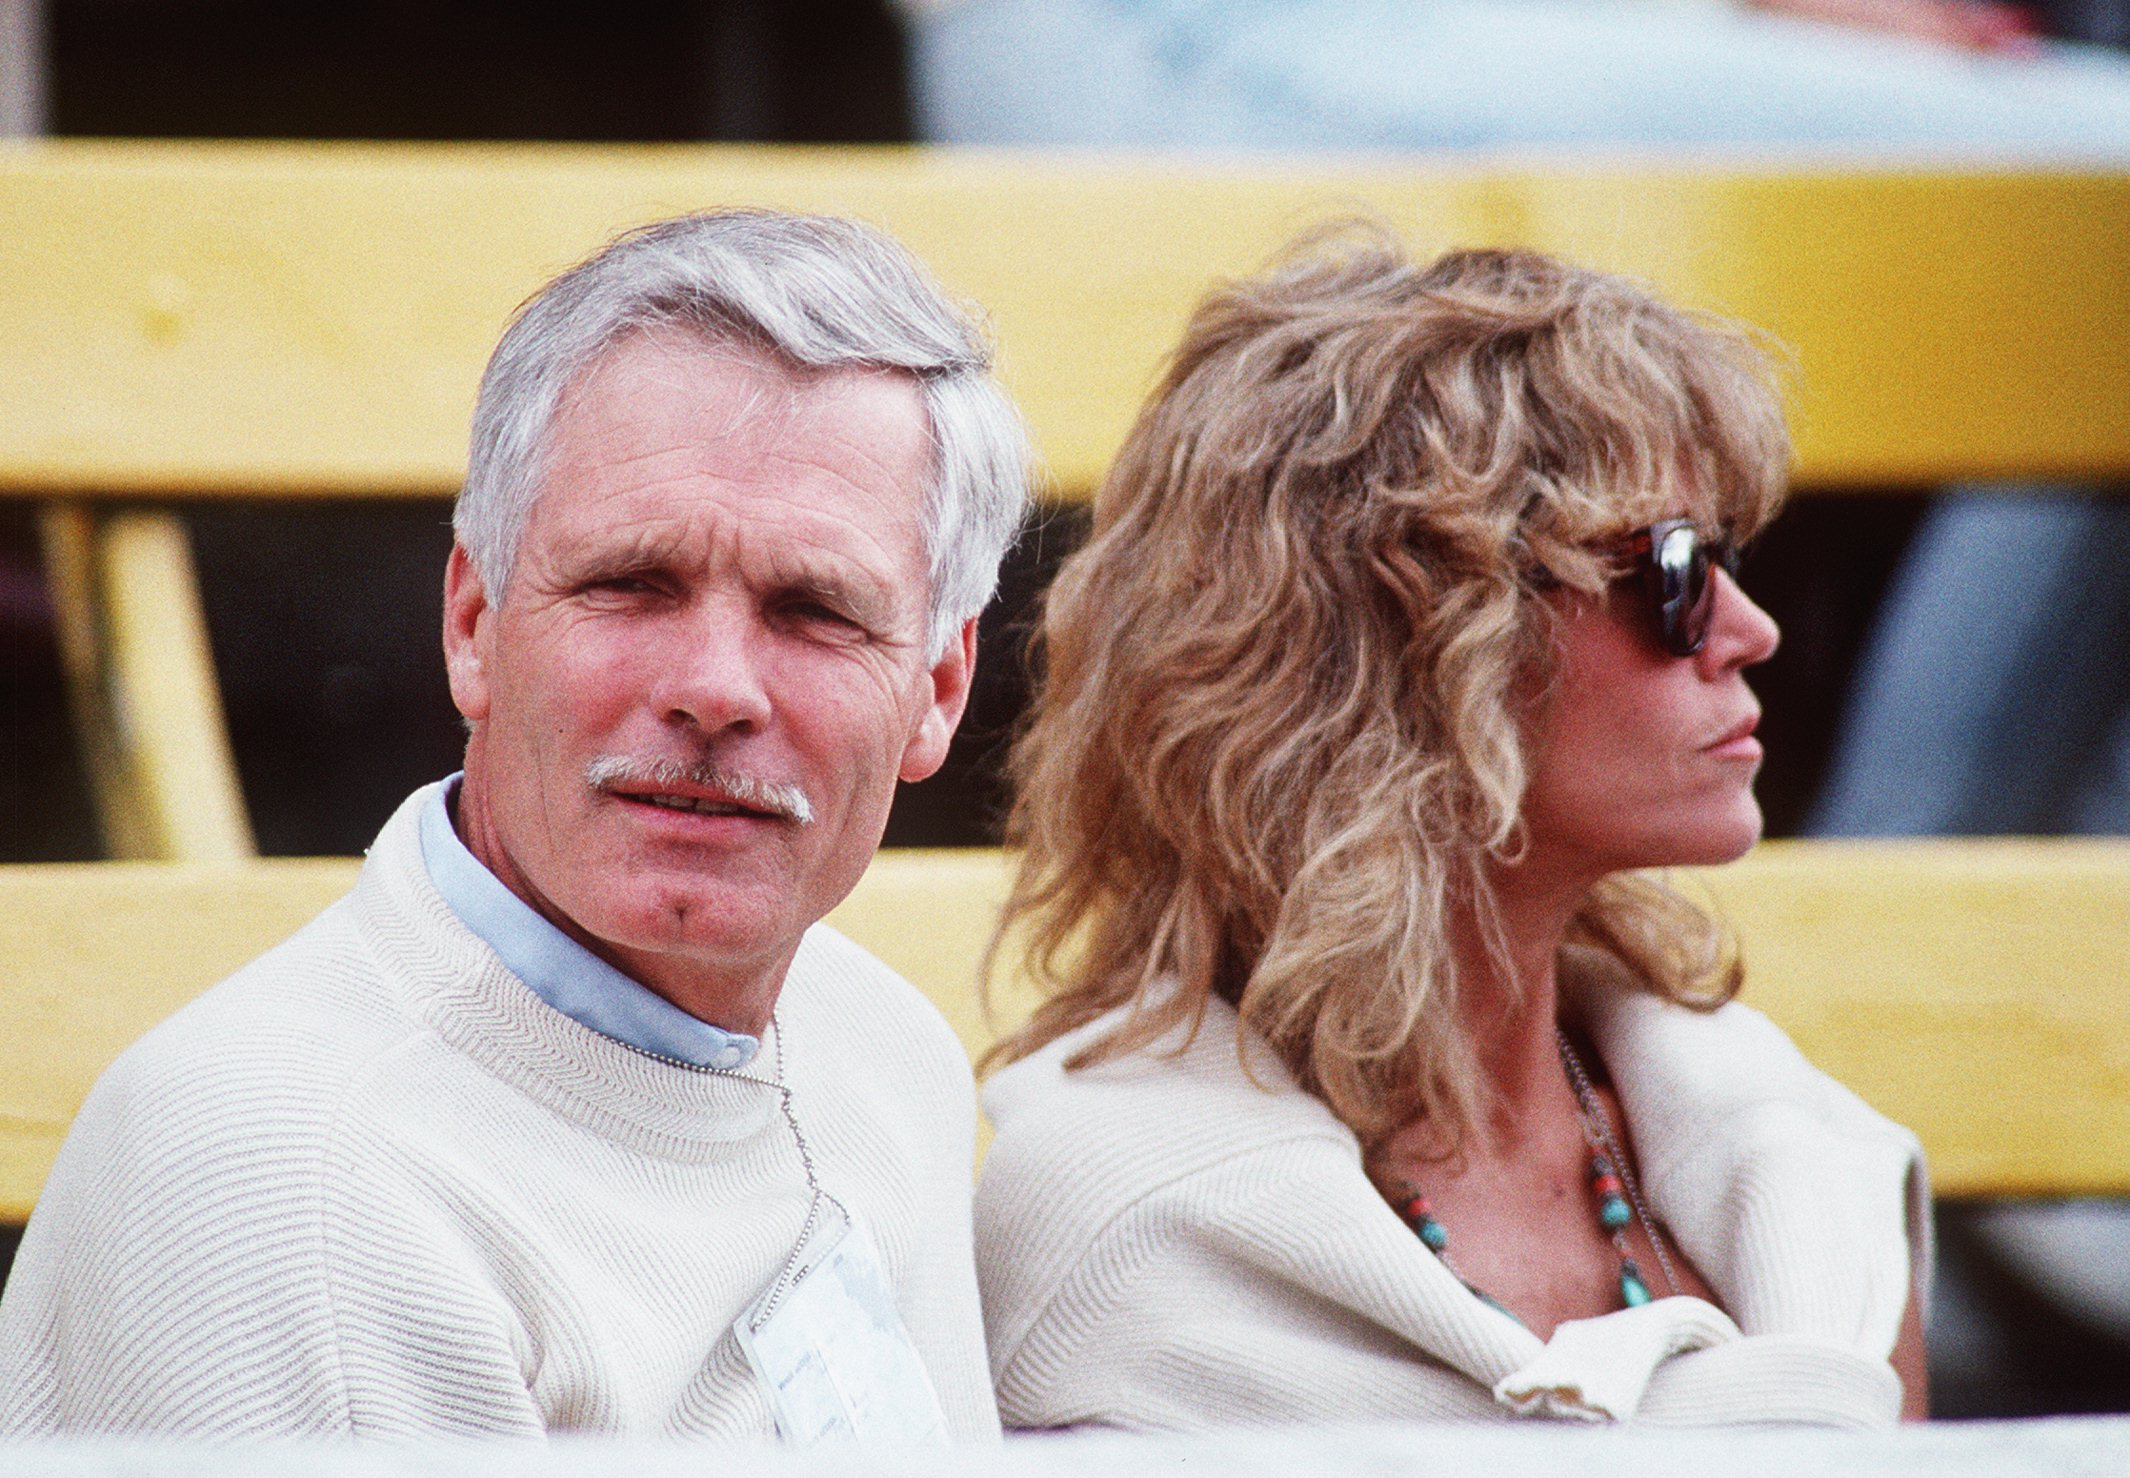 Media magnate Ted Turner and actress Jane Fonda on July 24, 1990. (Tony Duffy/ALLSPORT)